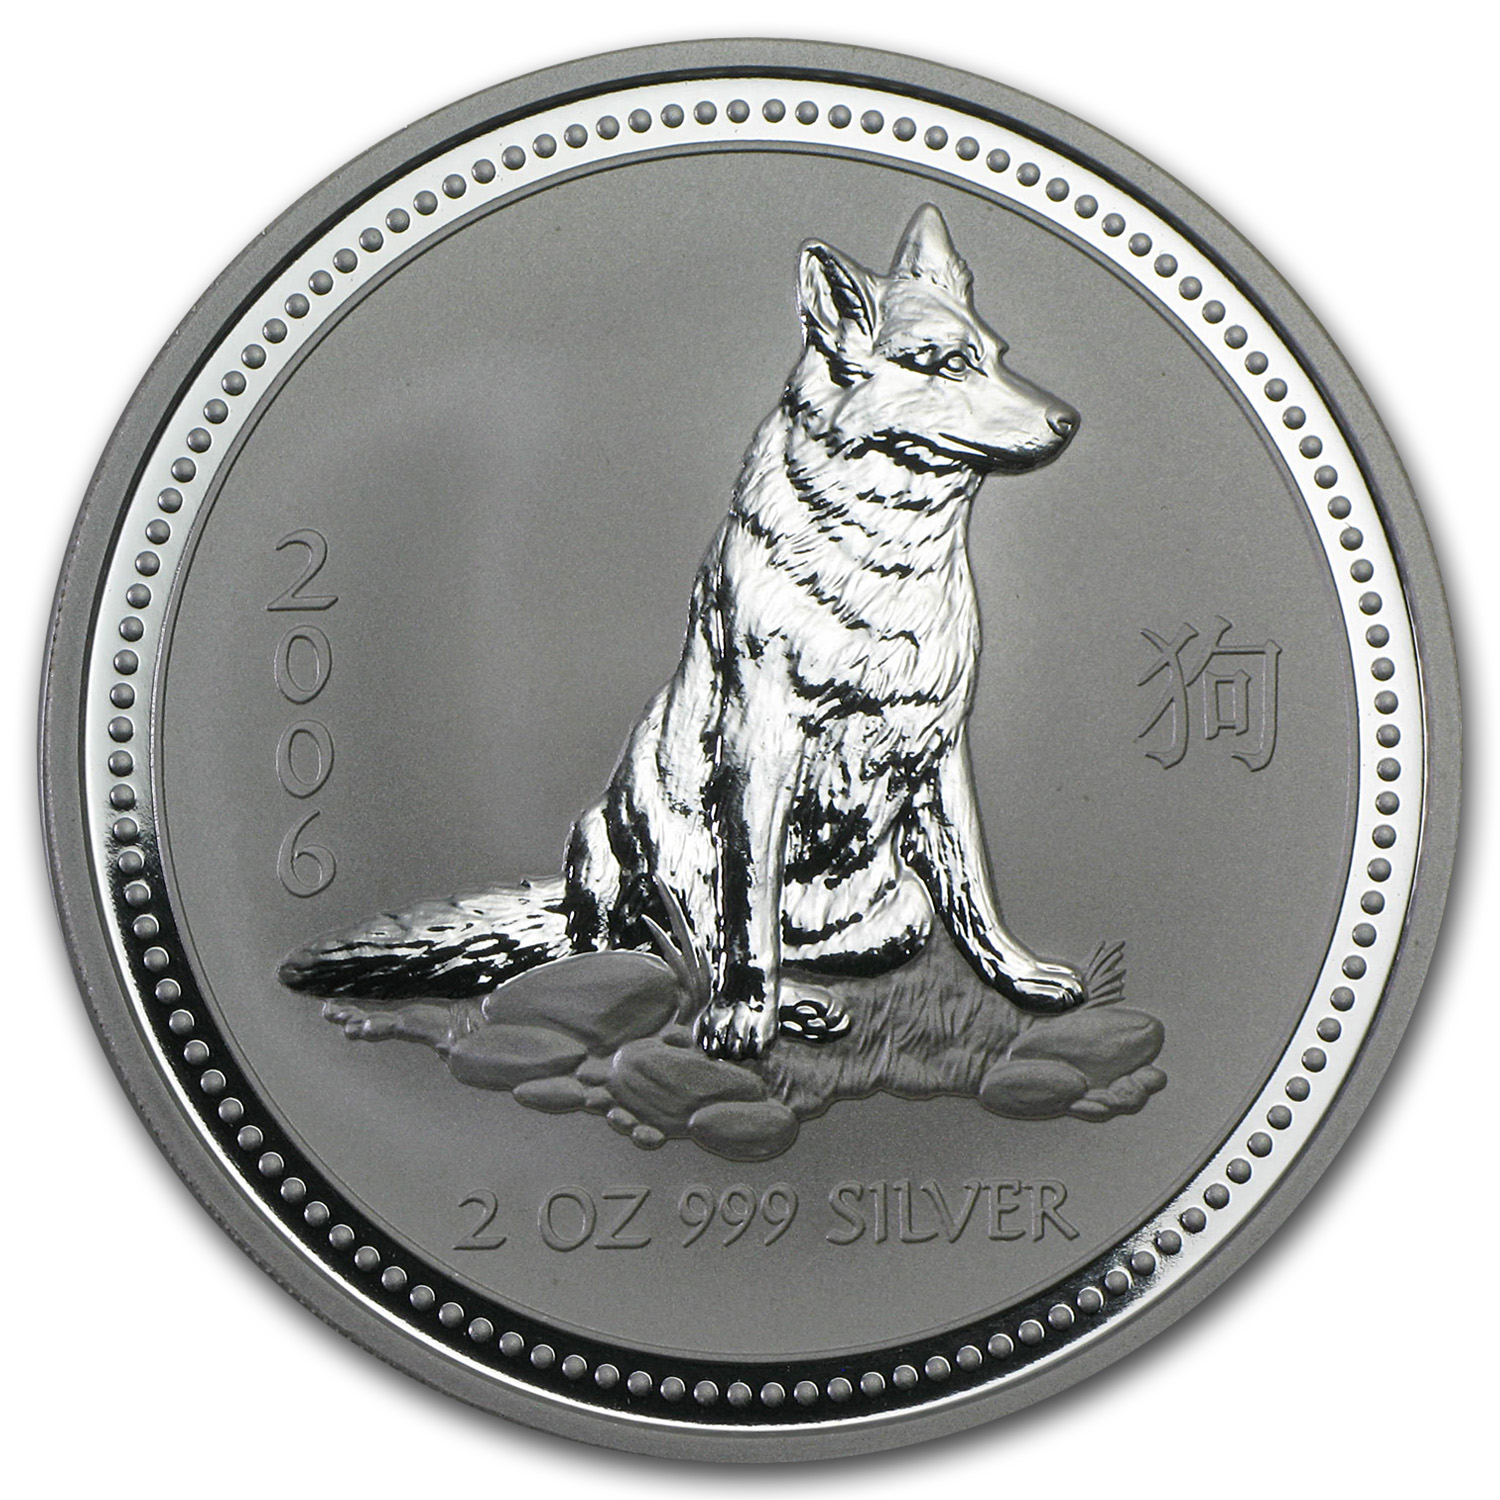 2006 2 oz Silver Lunar Year of the Dog (Series I)